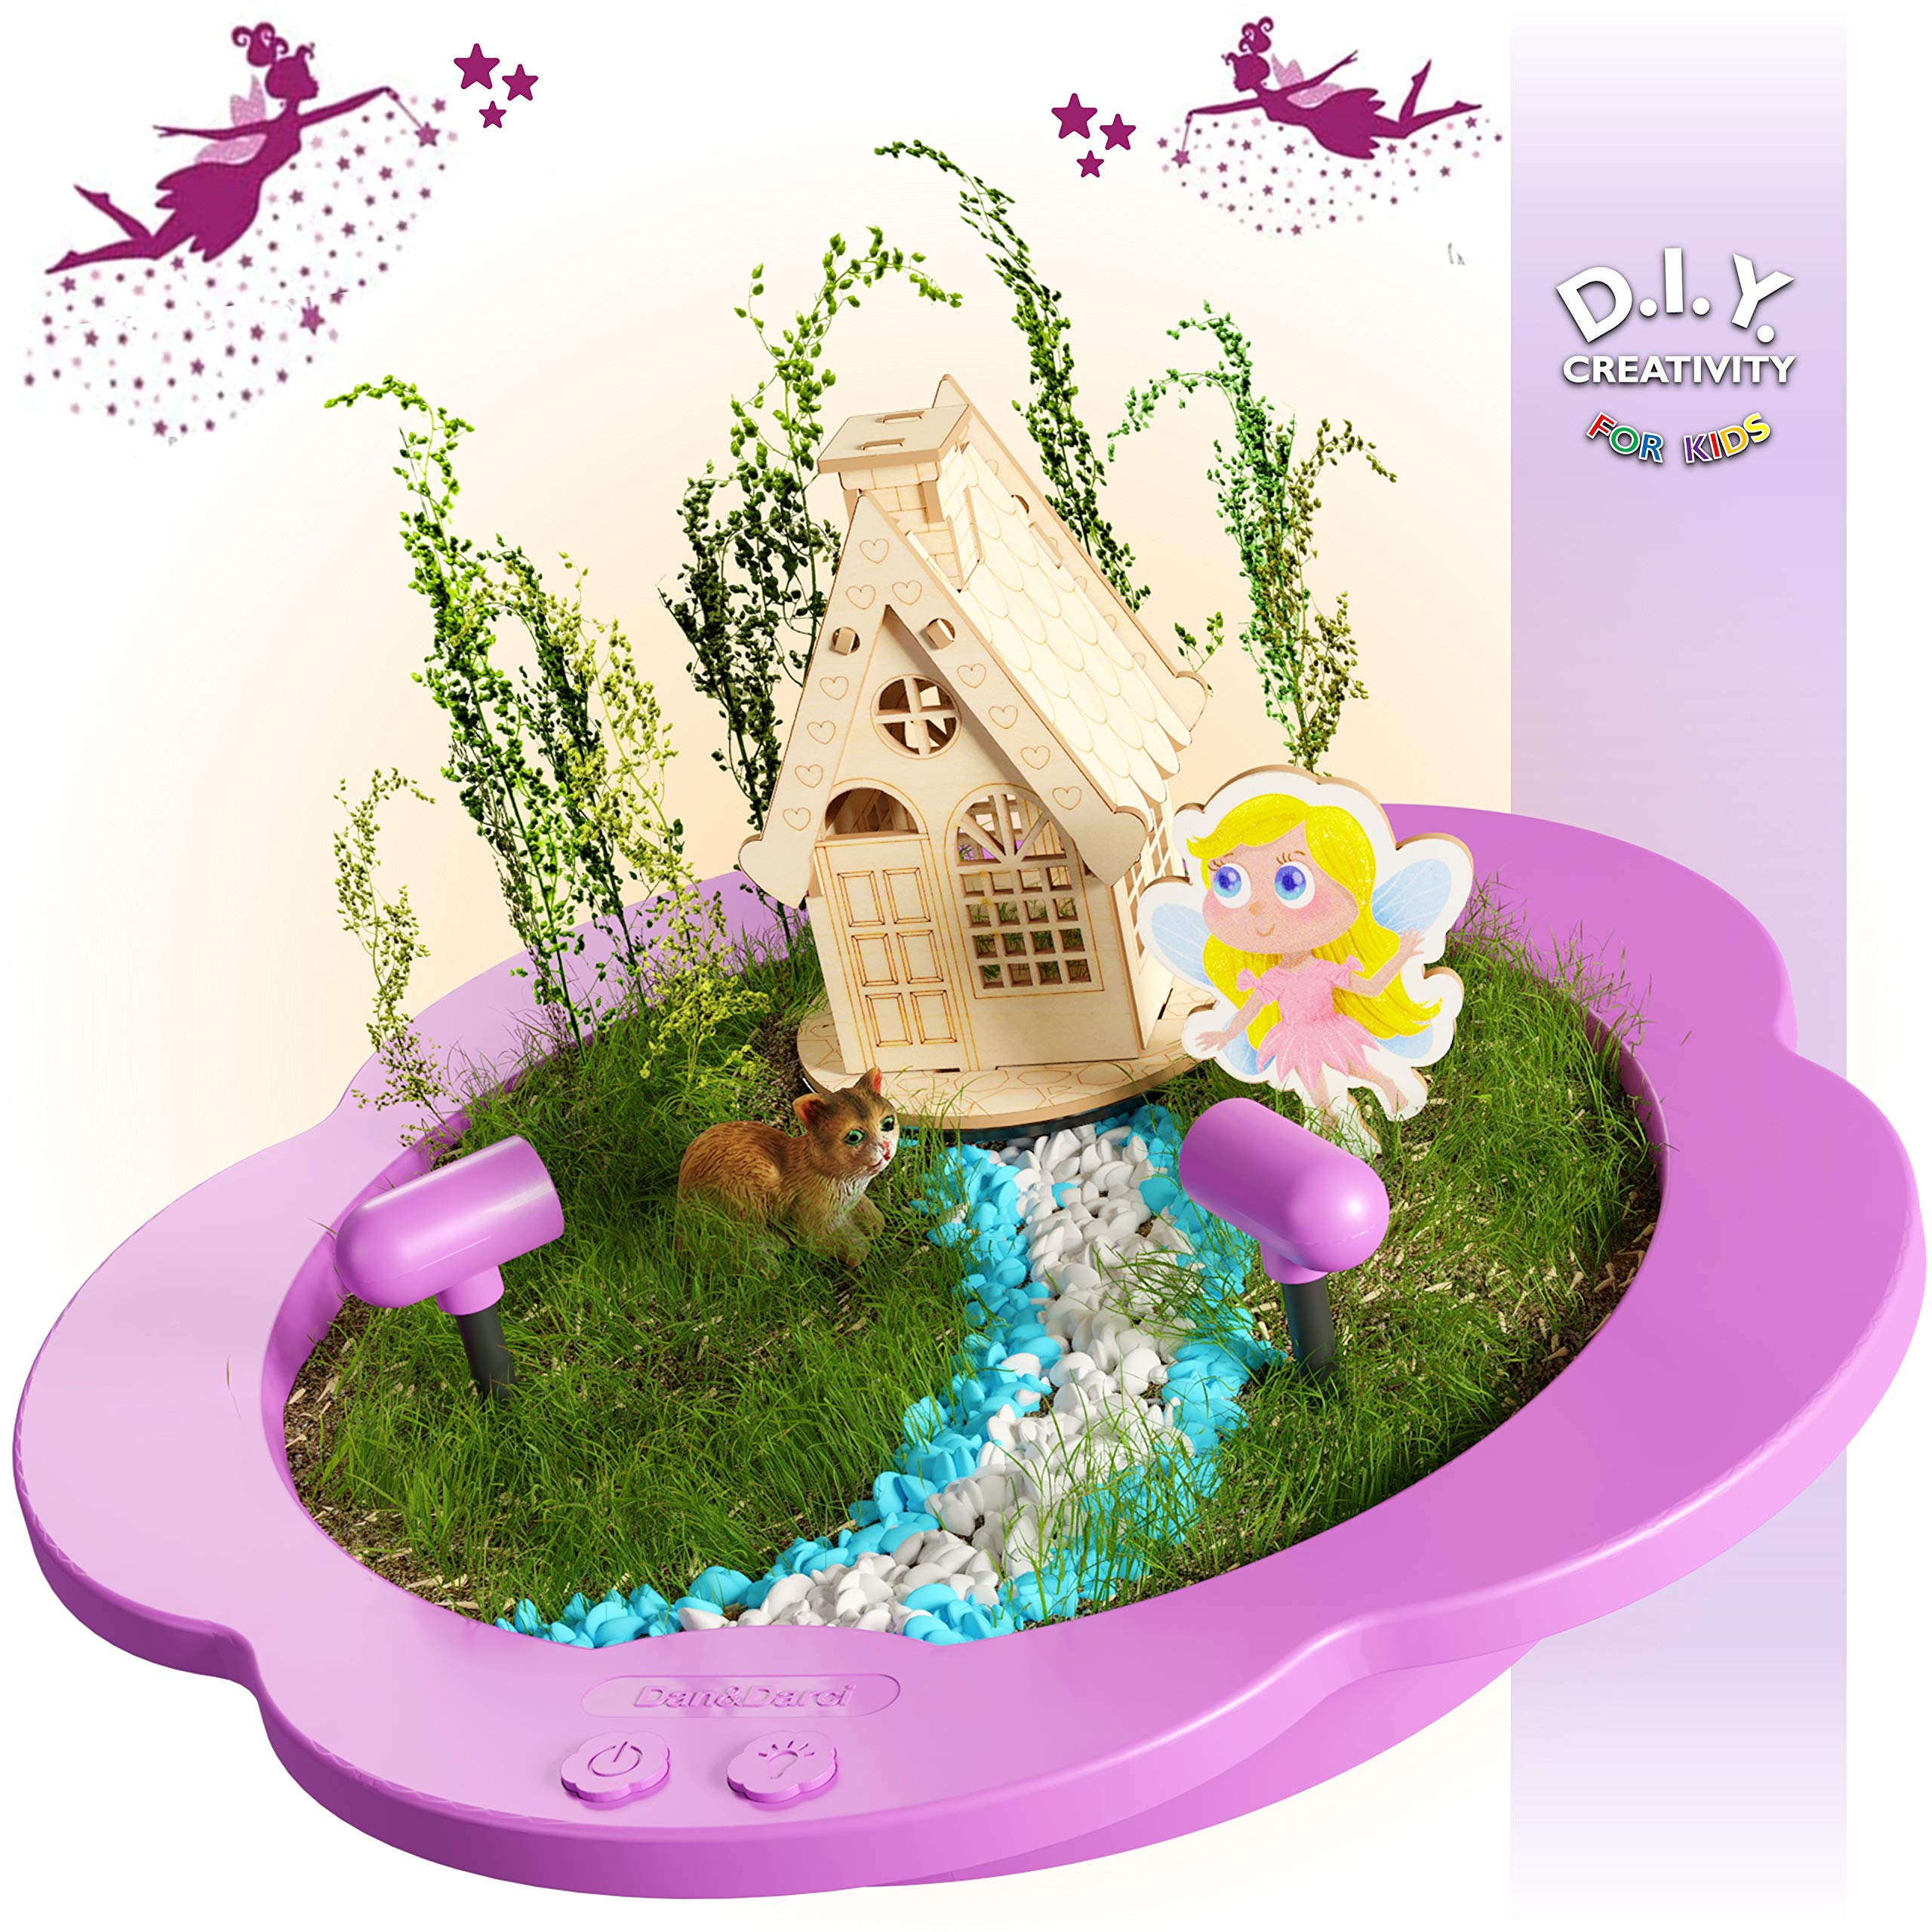 Light-up Fairy Garden Kit for Kids - Craft & Grow Your Own Indoor Gardening - Gift for Girls & Boys : Includes Everything for Planting a DIY Magical Enchanted Gardens - Fun STEM Crafts - Arts Toy Kits